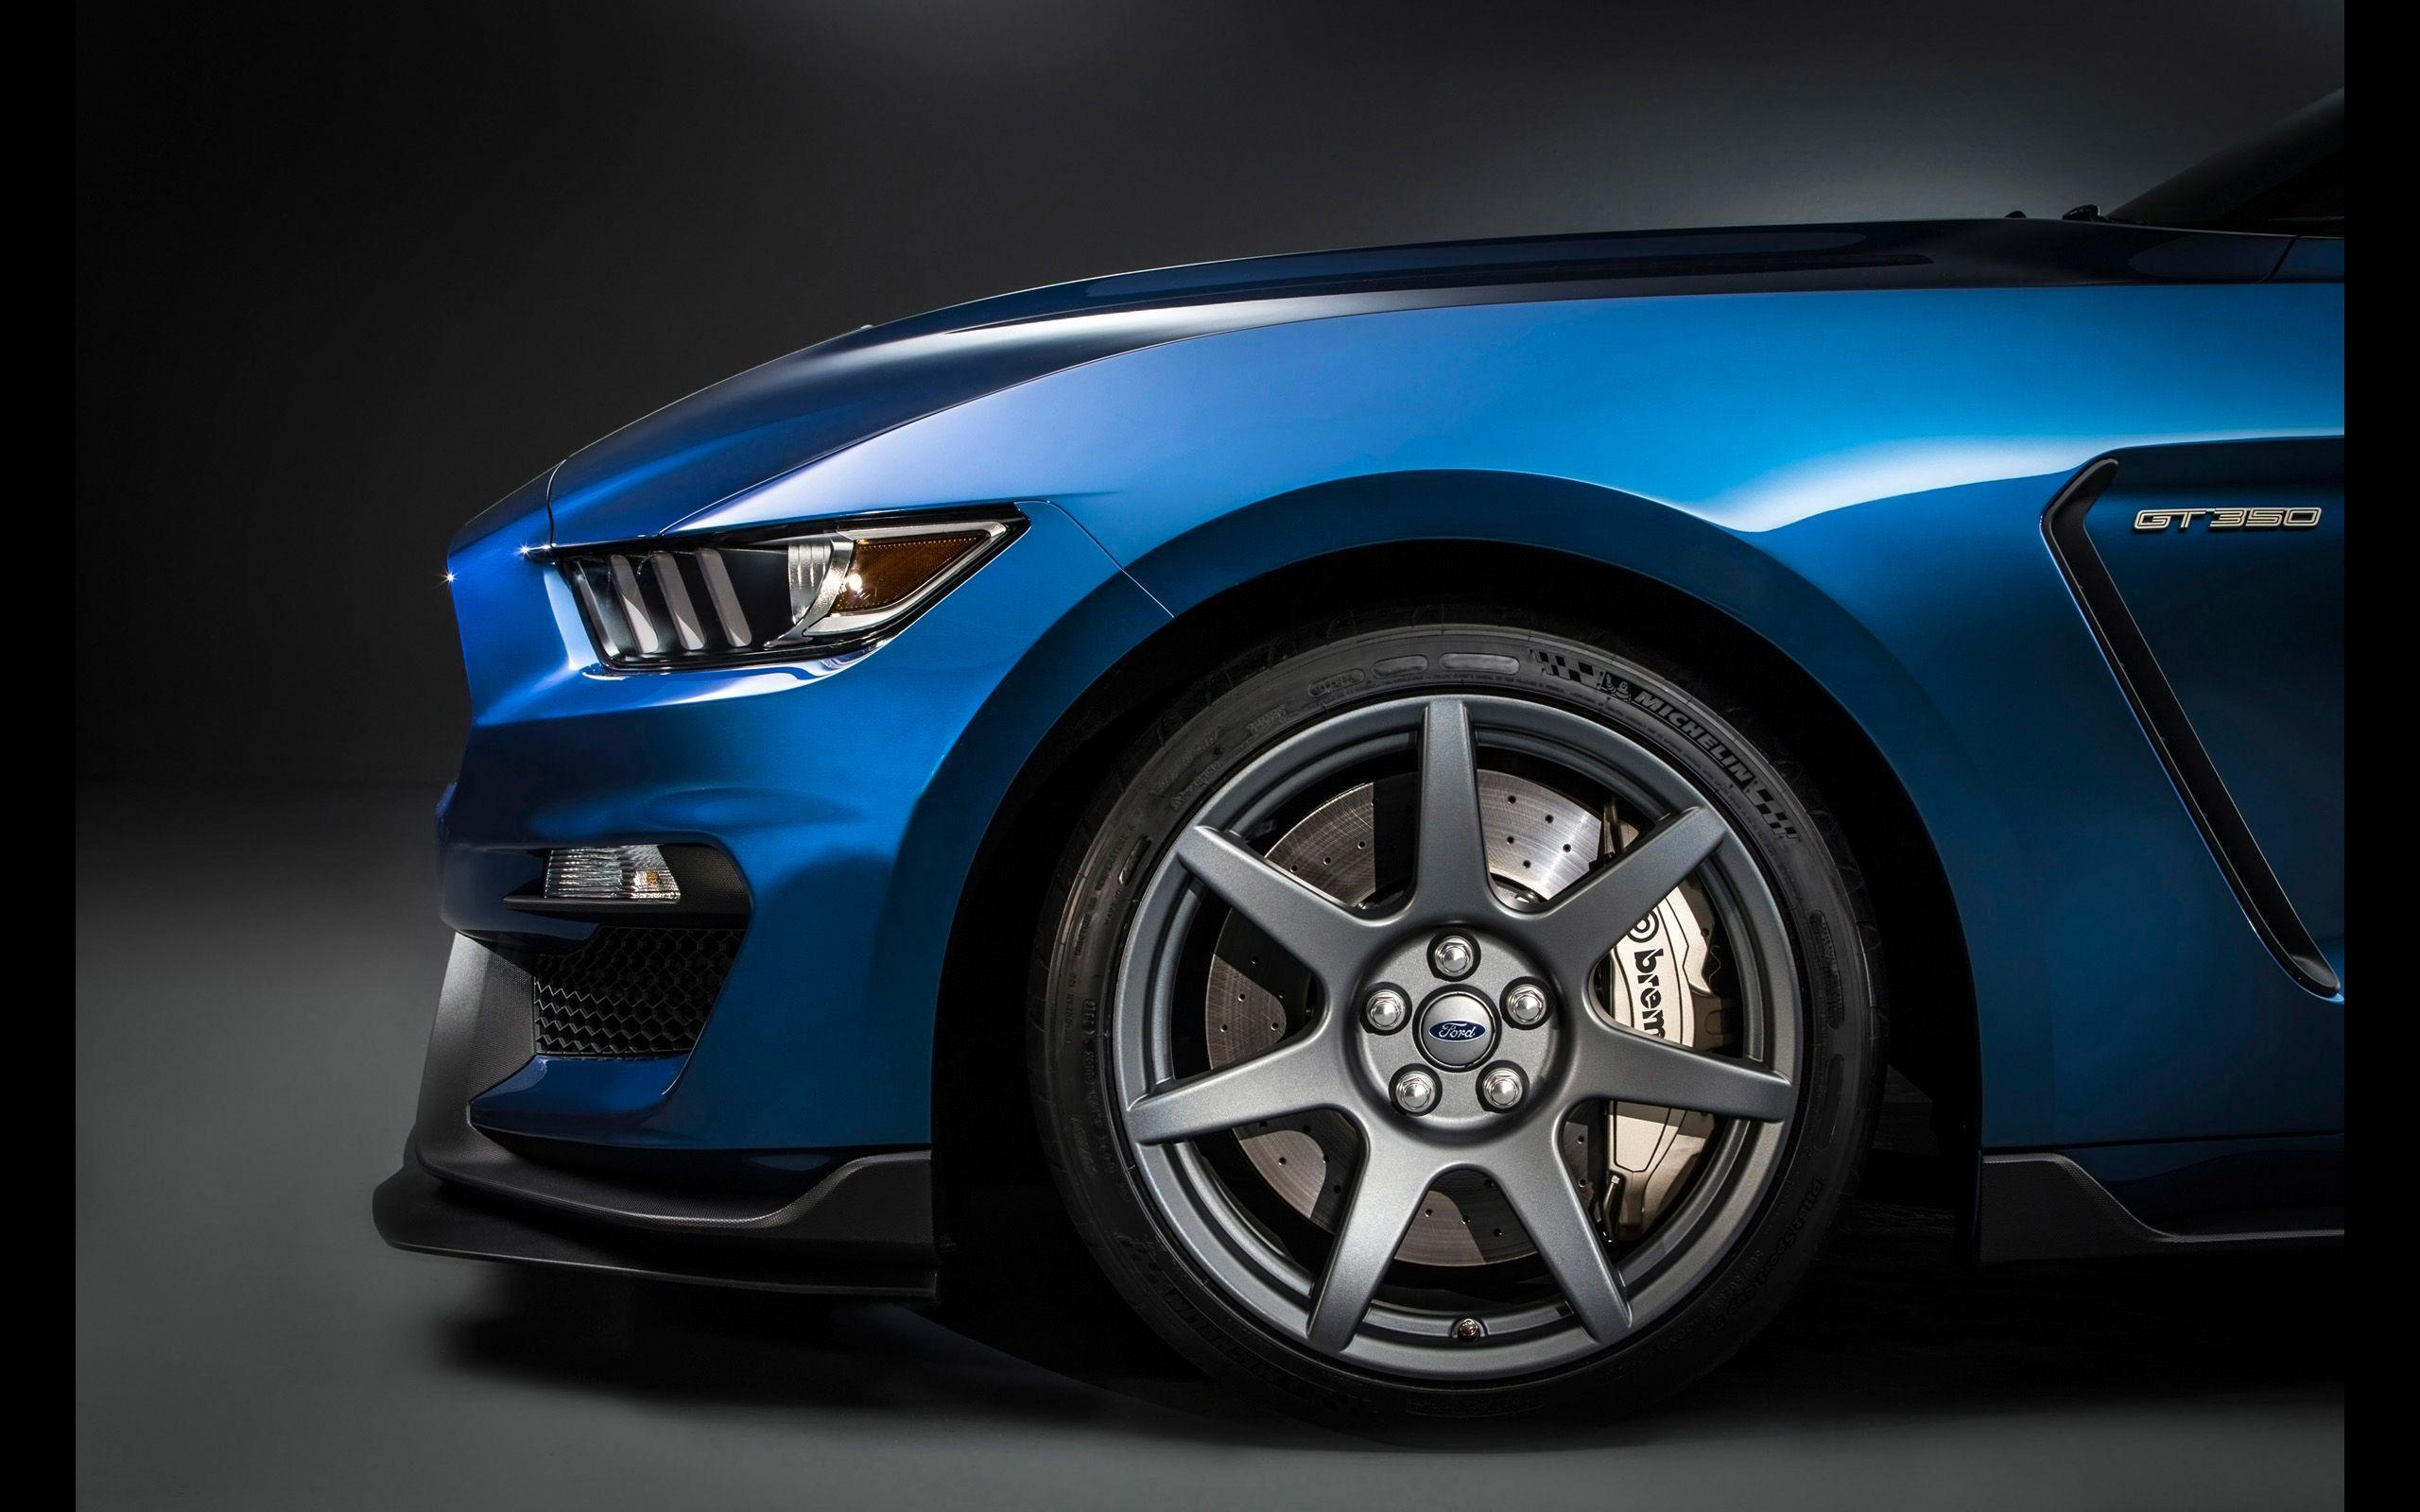 Mustang Gt 0 60 >> 2016 Ford Mustang Shelby Wallpapers - Wallpaper Cave